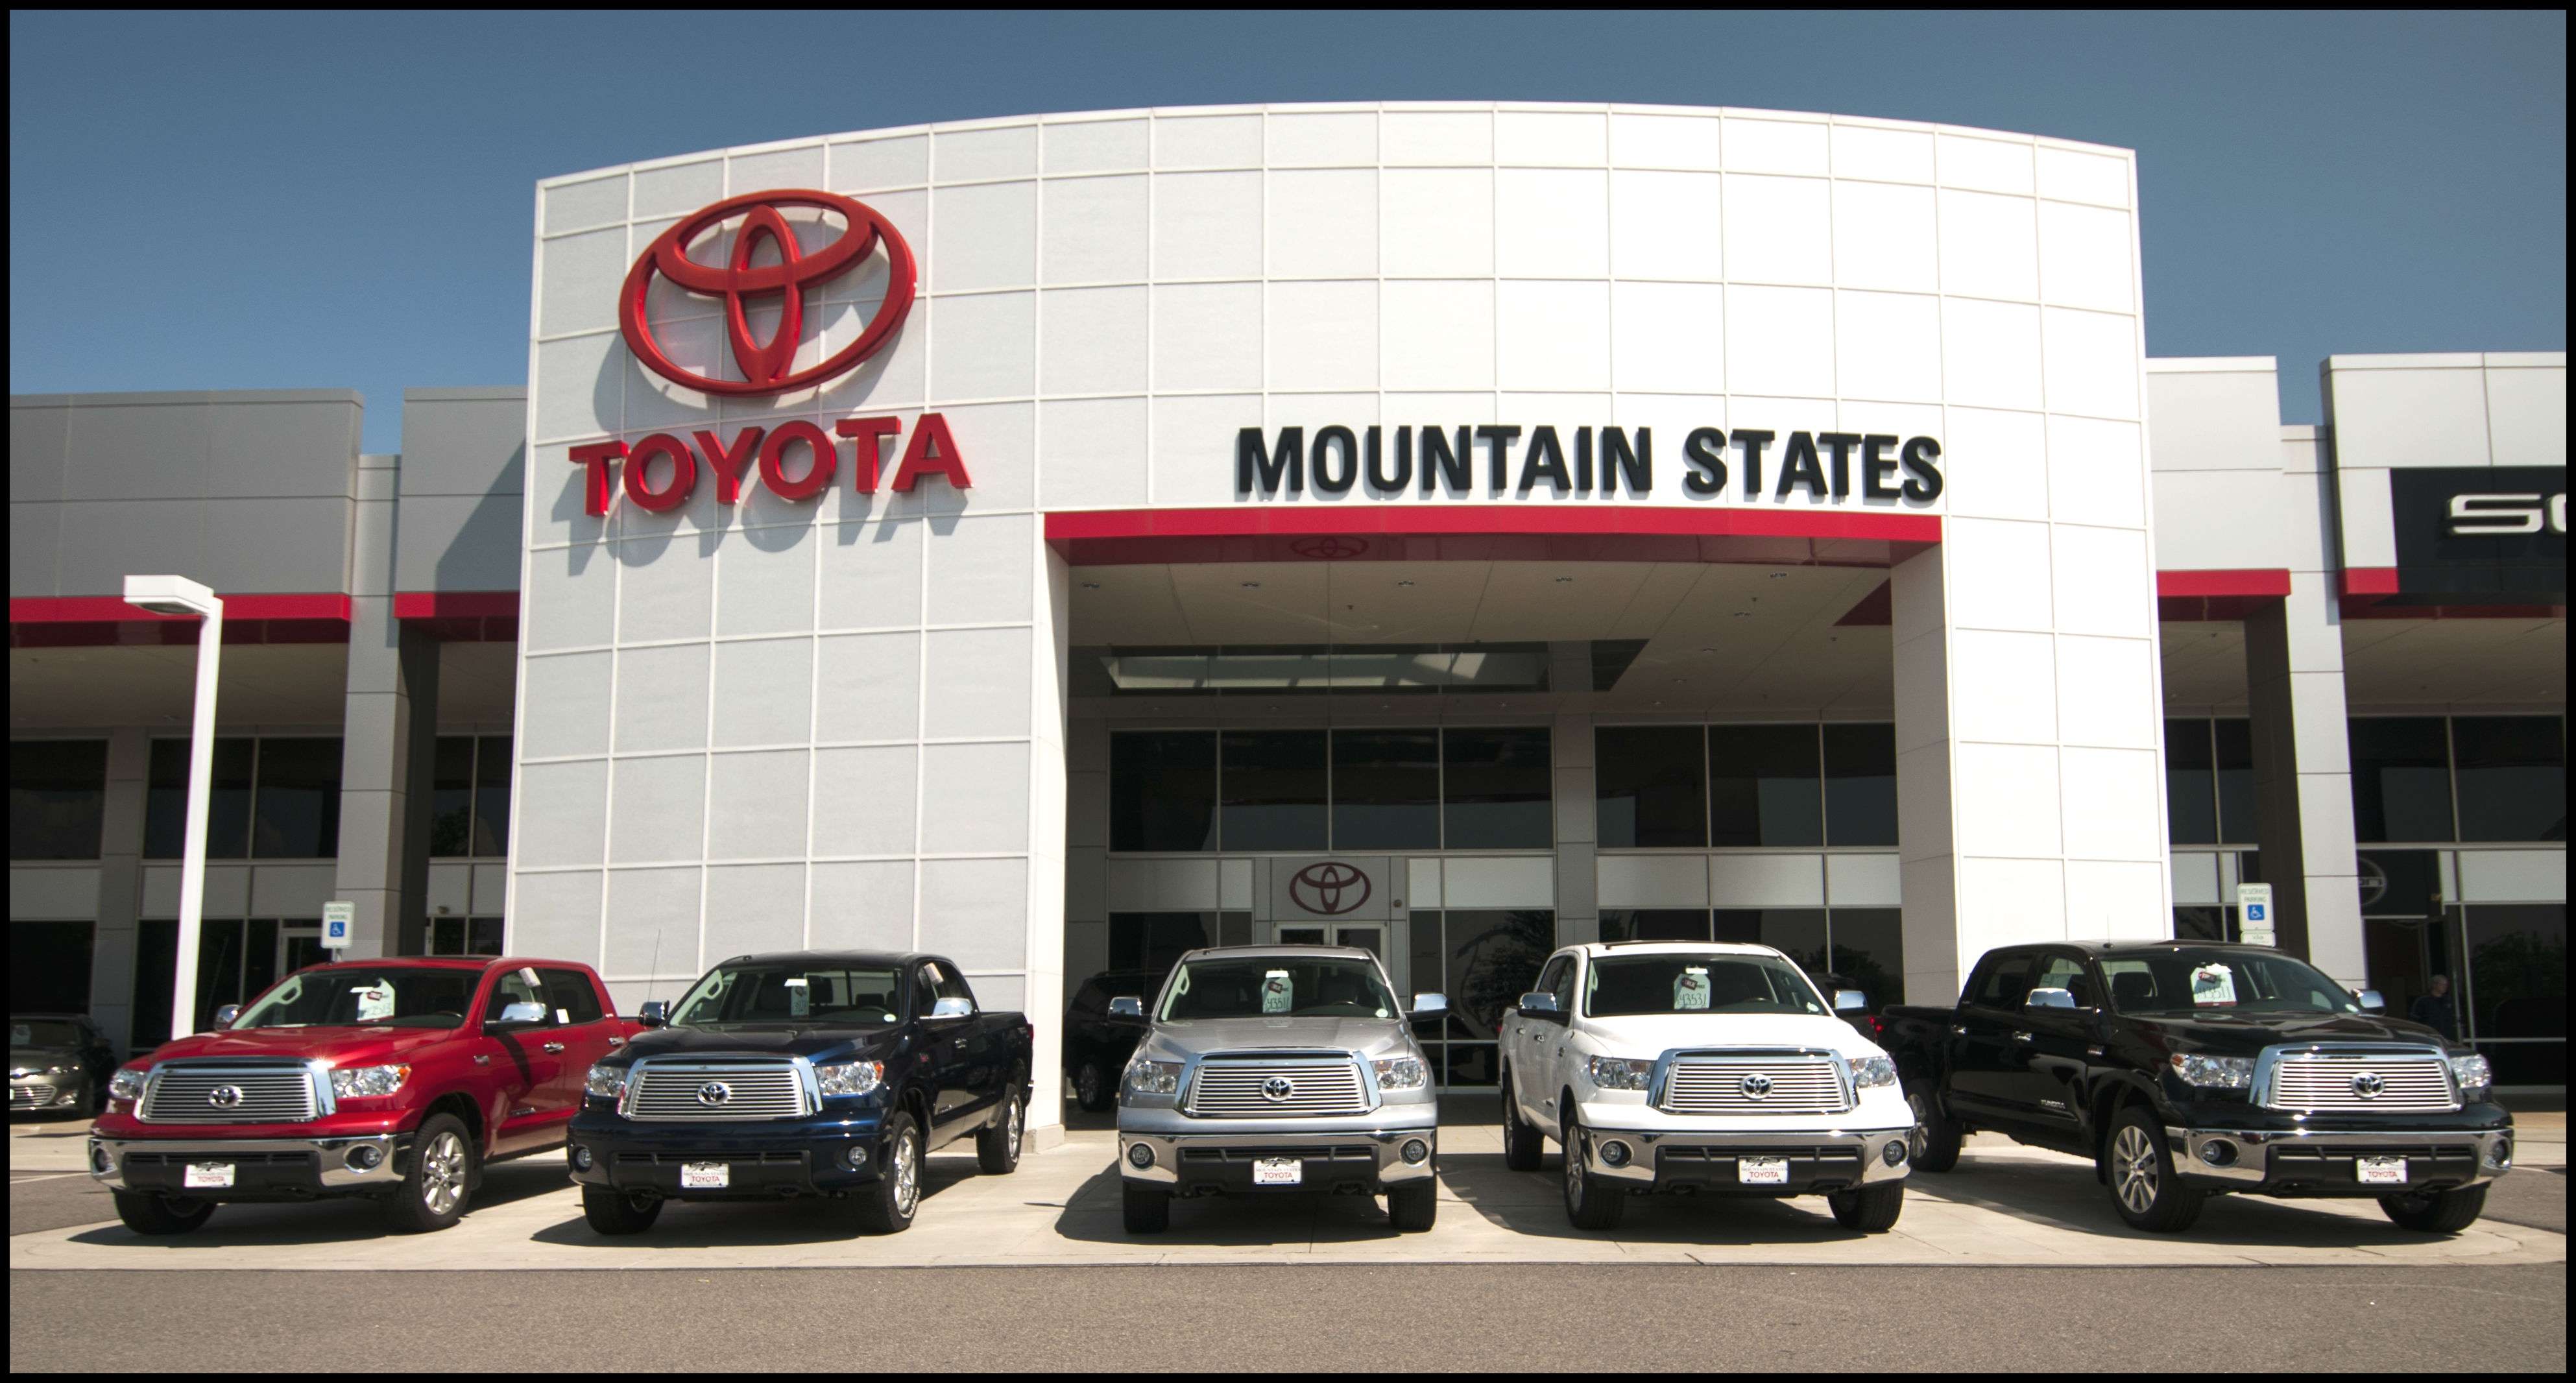 e to Mountain States Toyota in Denver for the best guest experience in the automotive industry